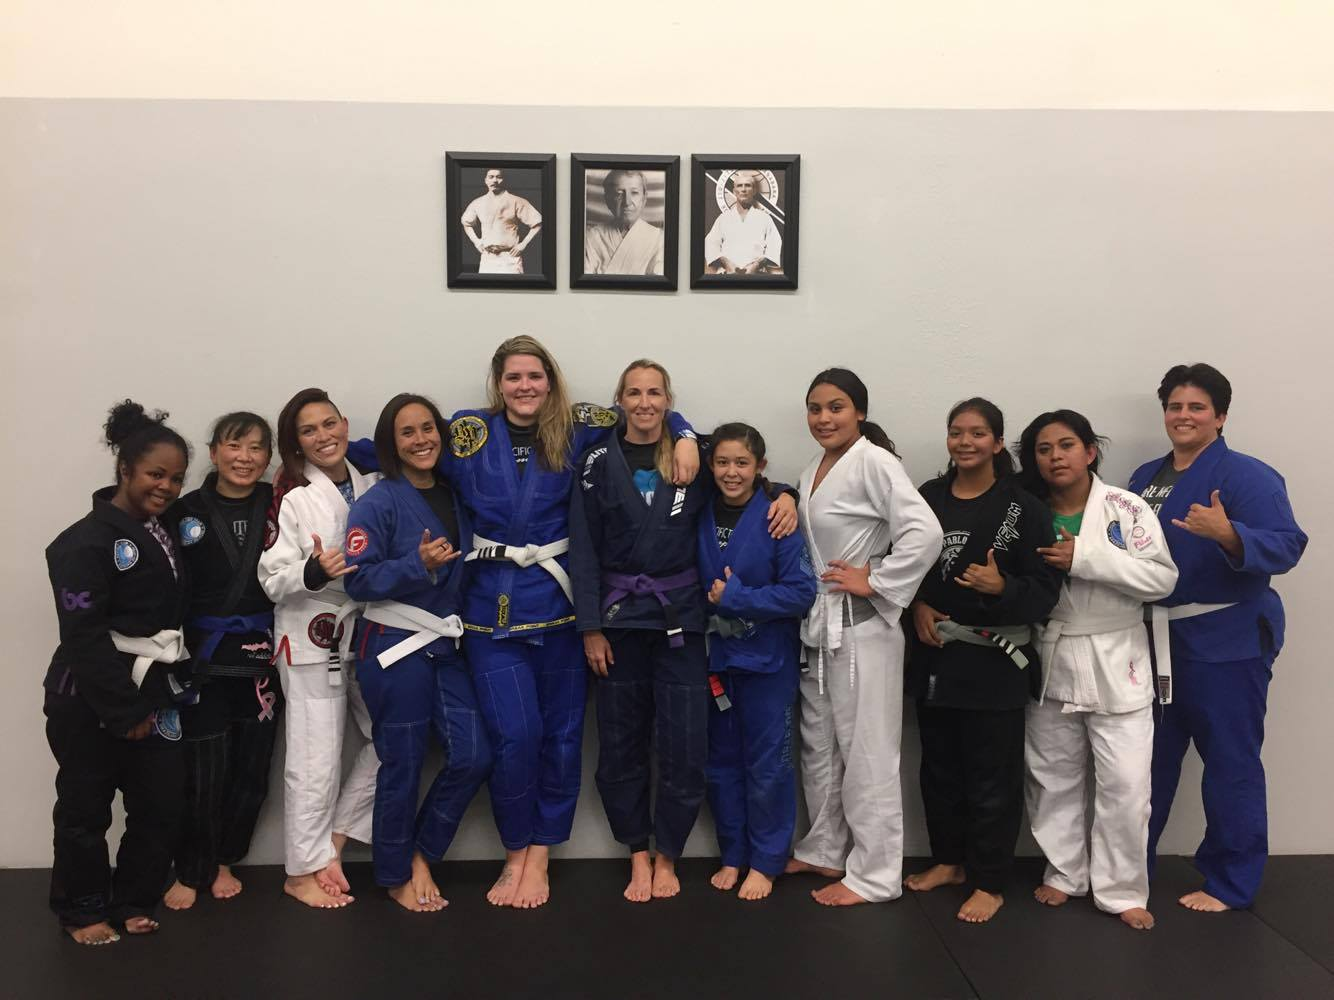 Elite Sports Team Elite Bjj Fighter Kimberly Pruyssers Image5